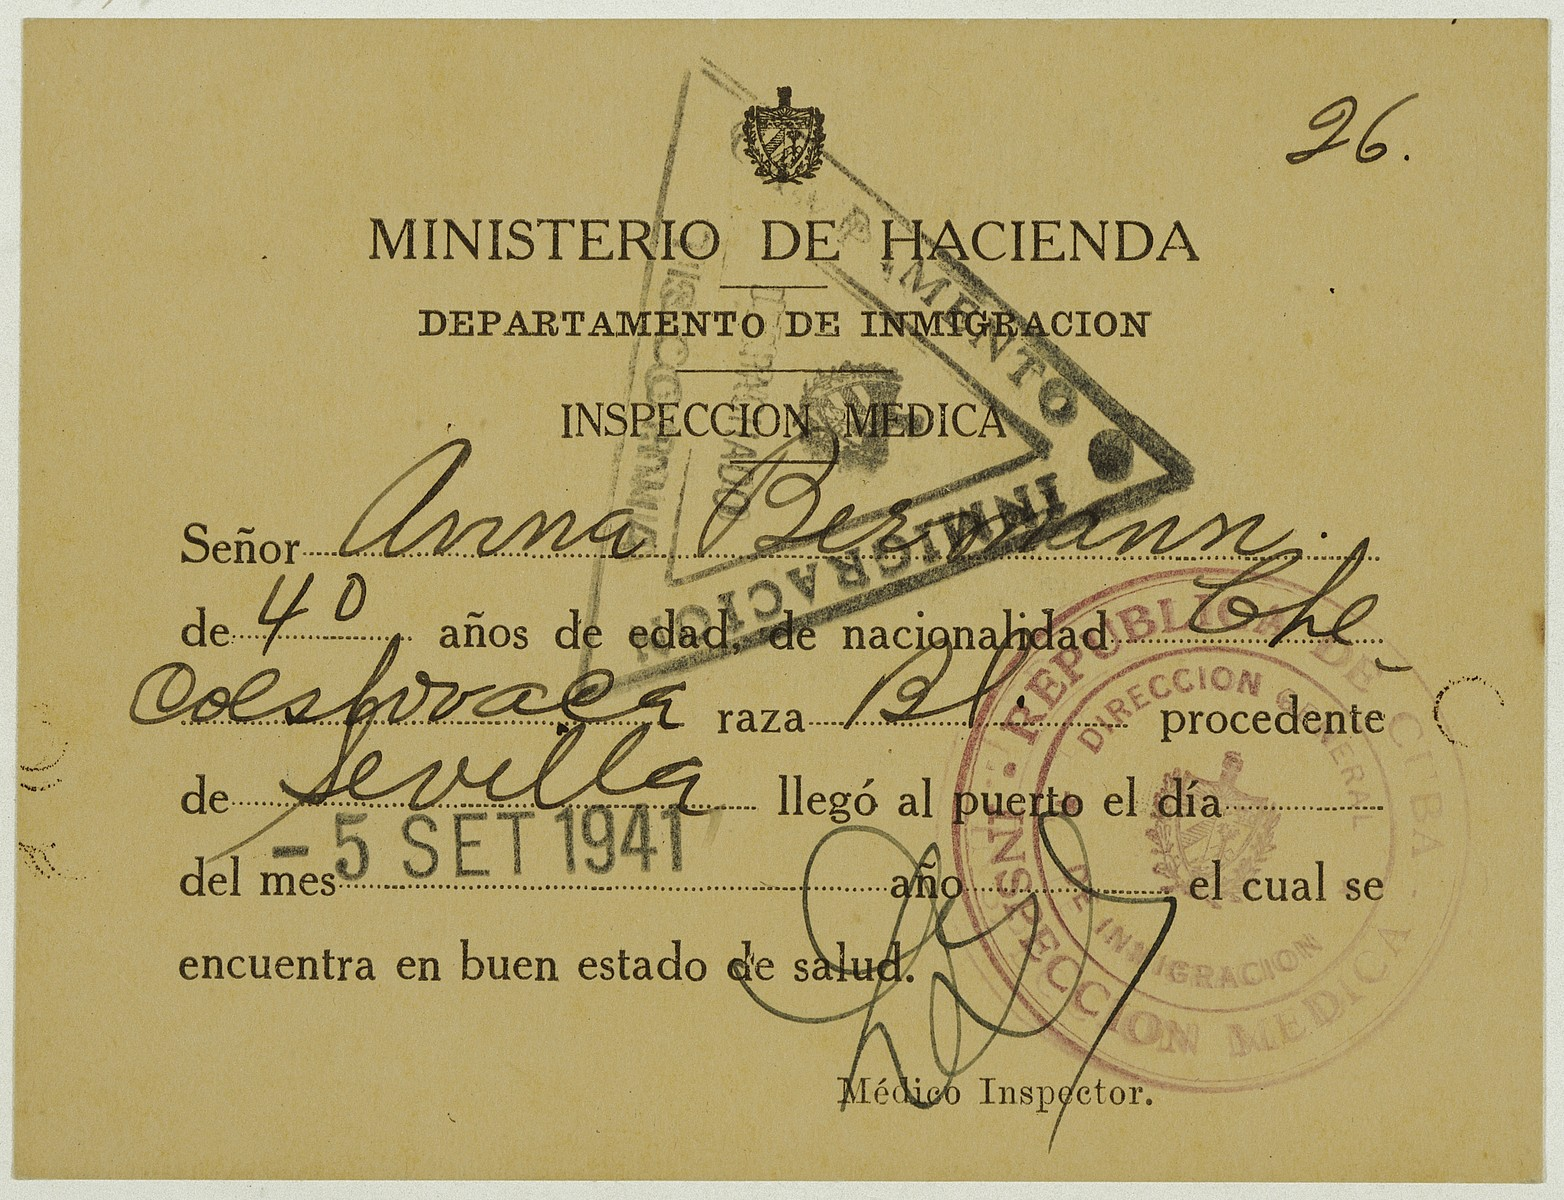 Health certificate issued to Anna Bermann allowing her to enter Cuba.